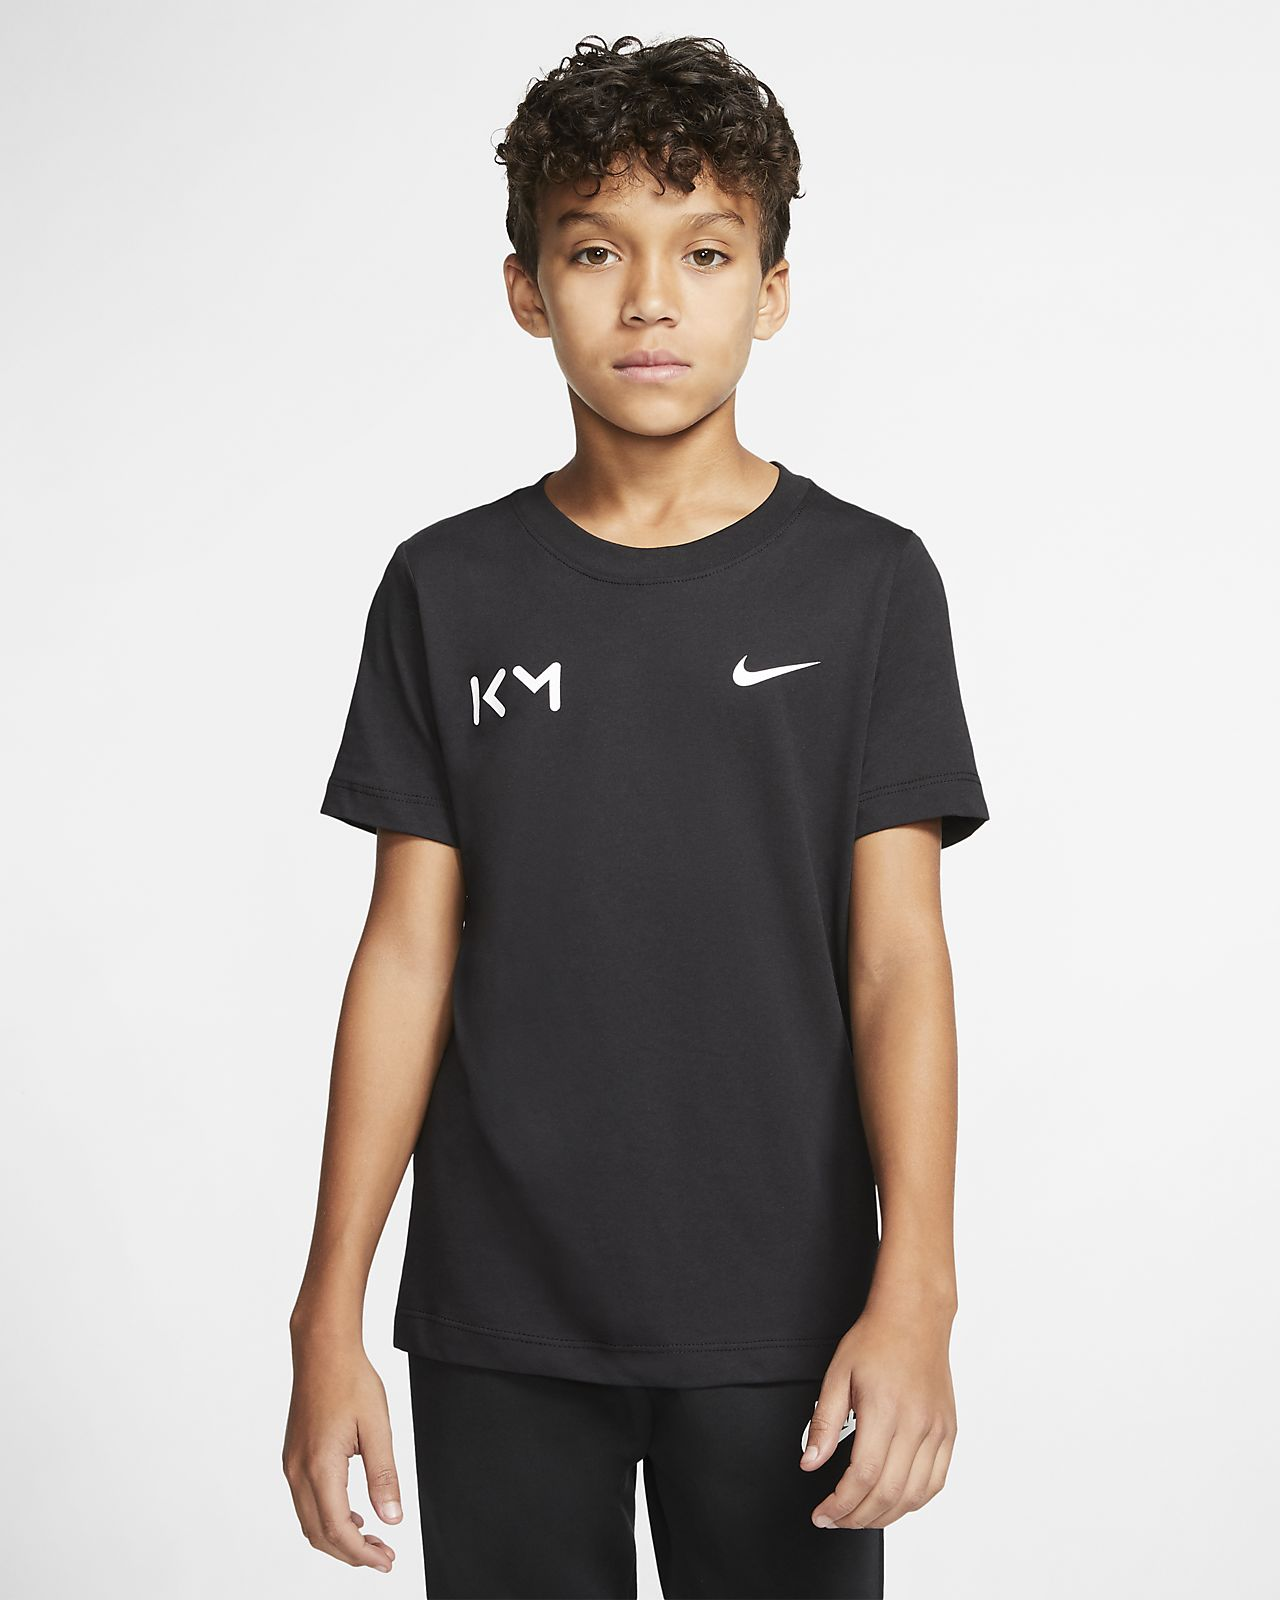 Kylian Mbappé Older Kids' Football T-Shirt